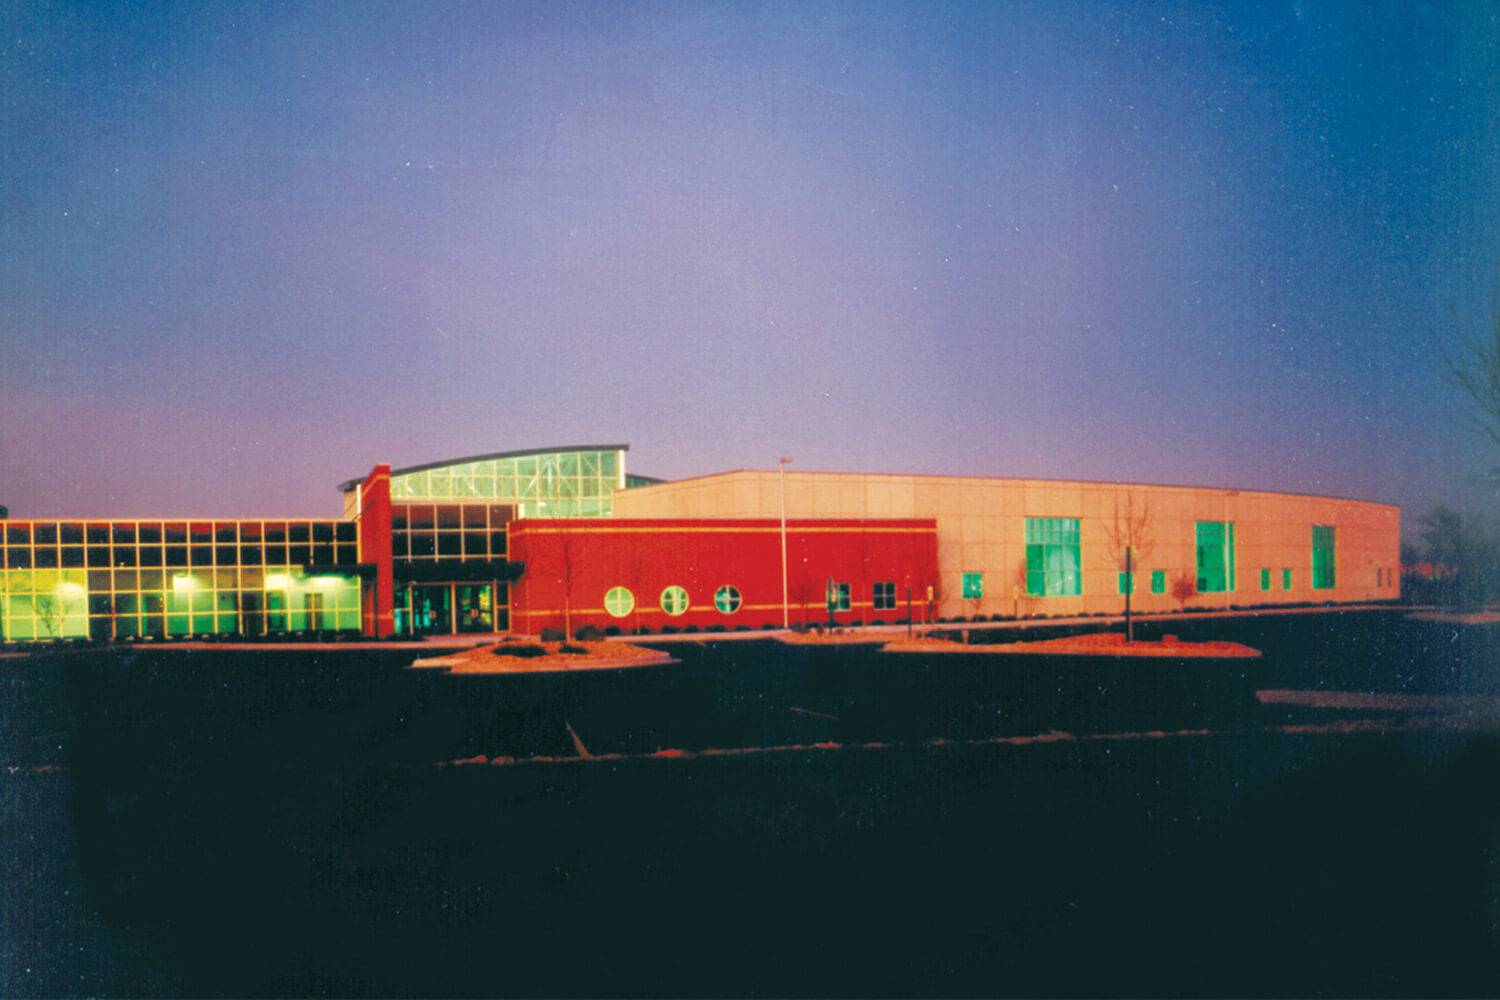 Edward Hospital Health and Fitness Center exterior at dusk